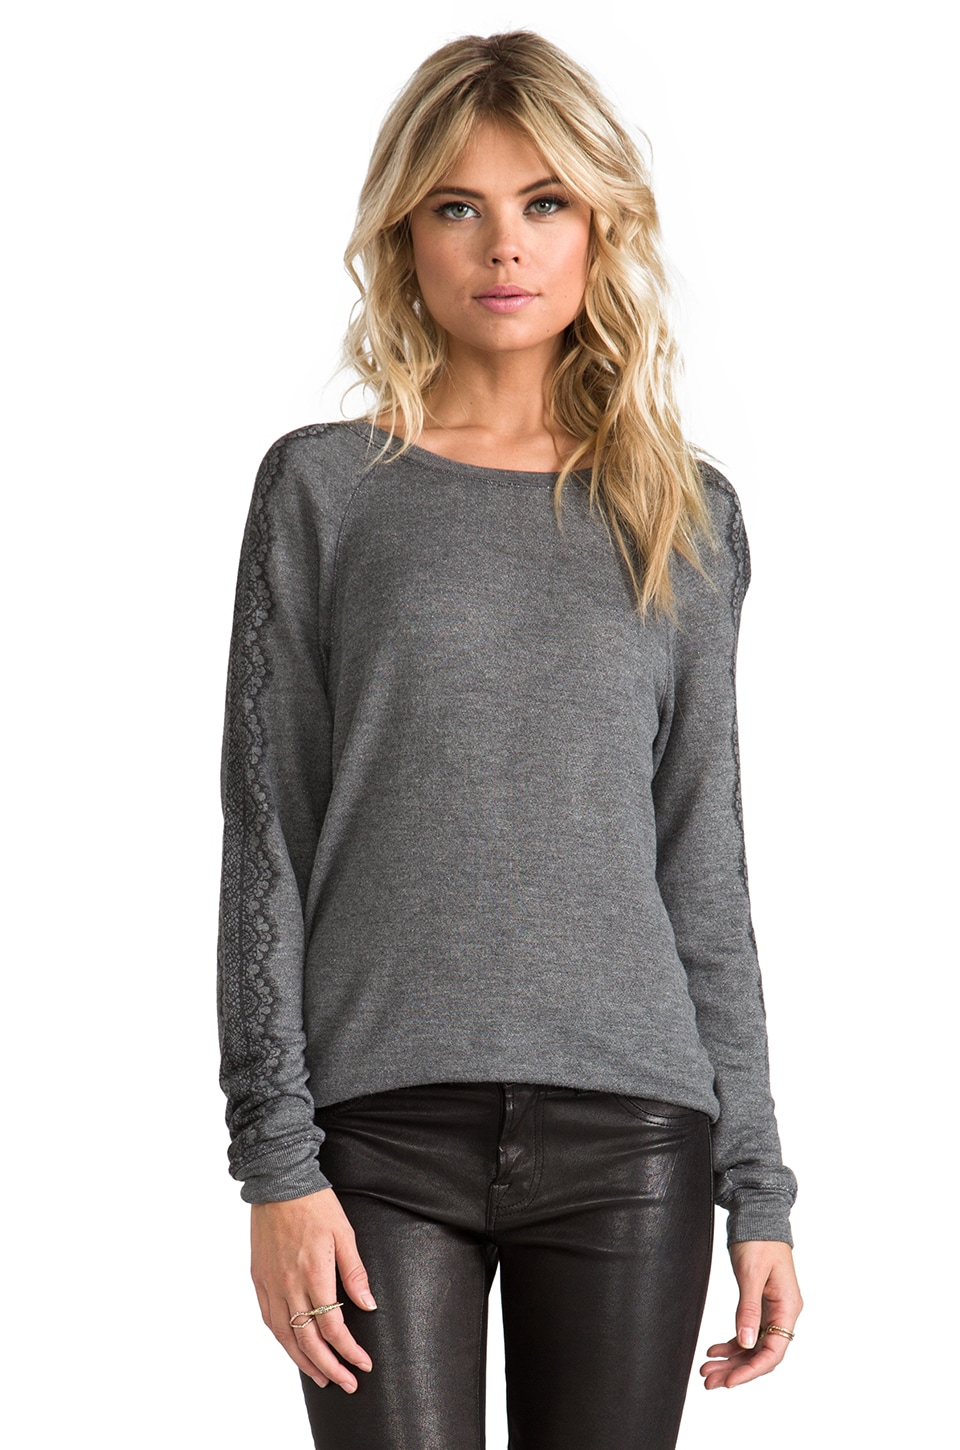 Soft Joie Annora B Sweatshirt in Dark Heather Grey